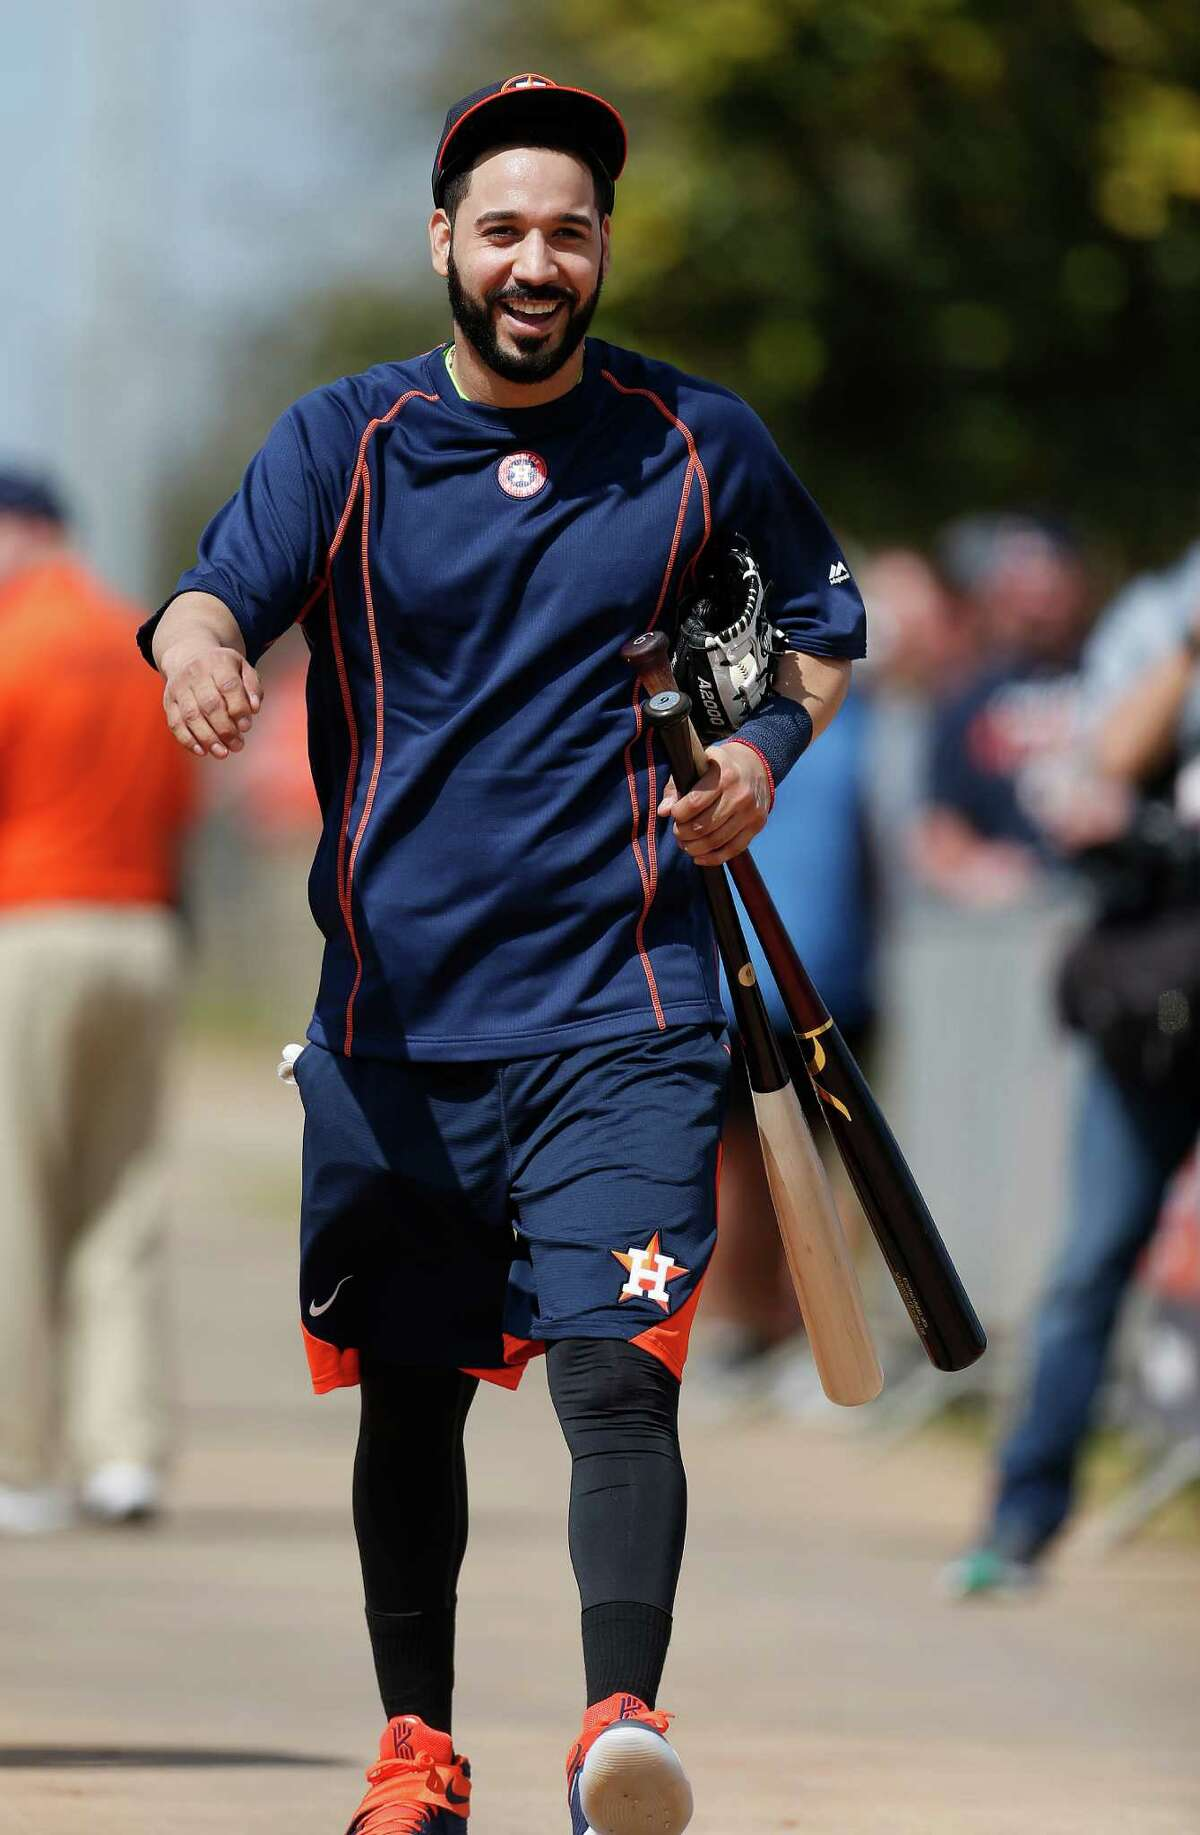 Houston Astros infielder Marwin Gonzalez laughs after returning from batting cages during the first workout for Houston Astros pitchers and catchers for spring training in Kissimmee, Florida, Friday, Feb. 19, 2016.